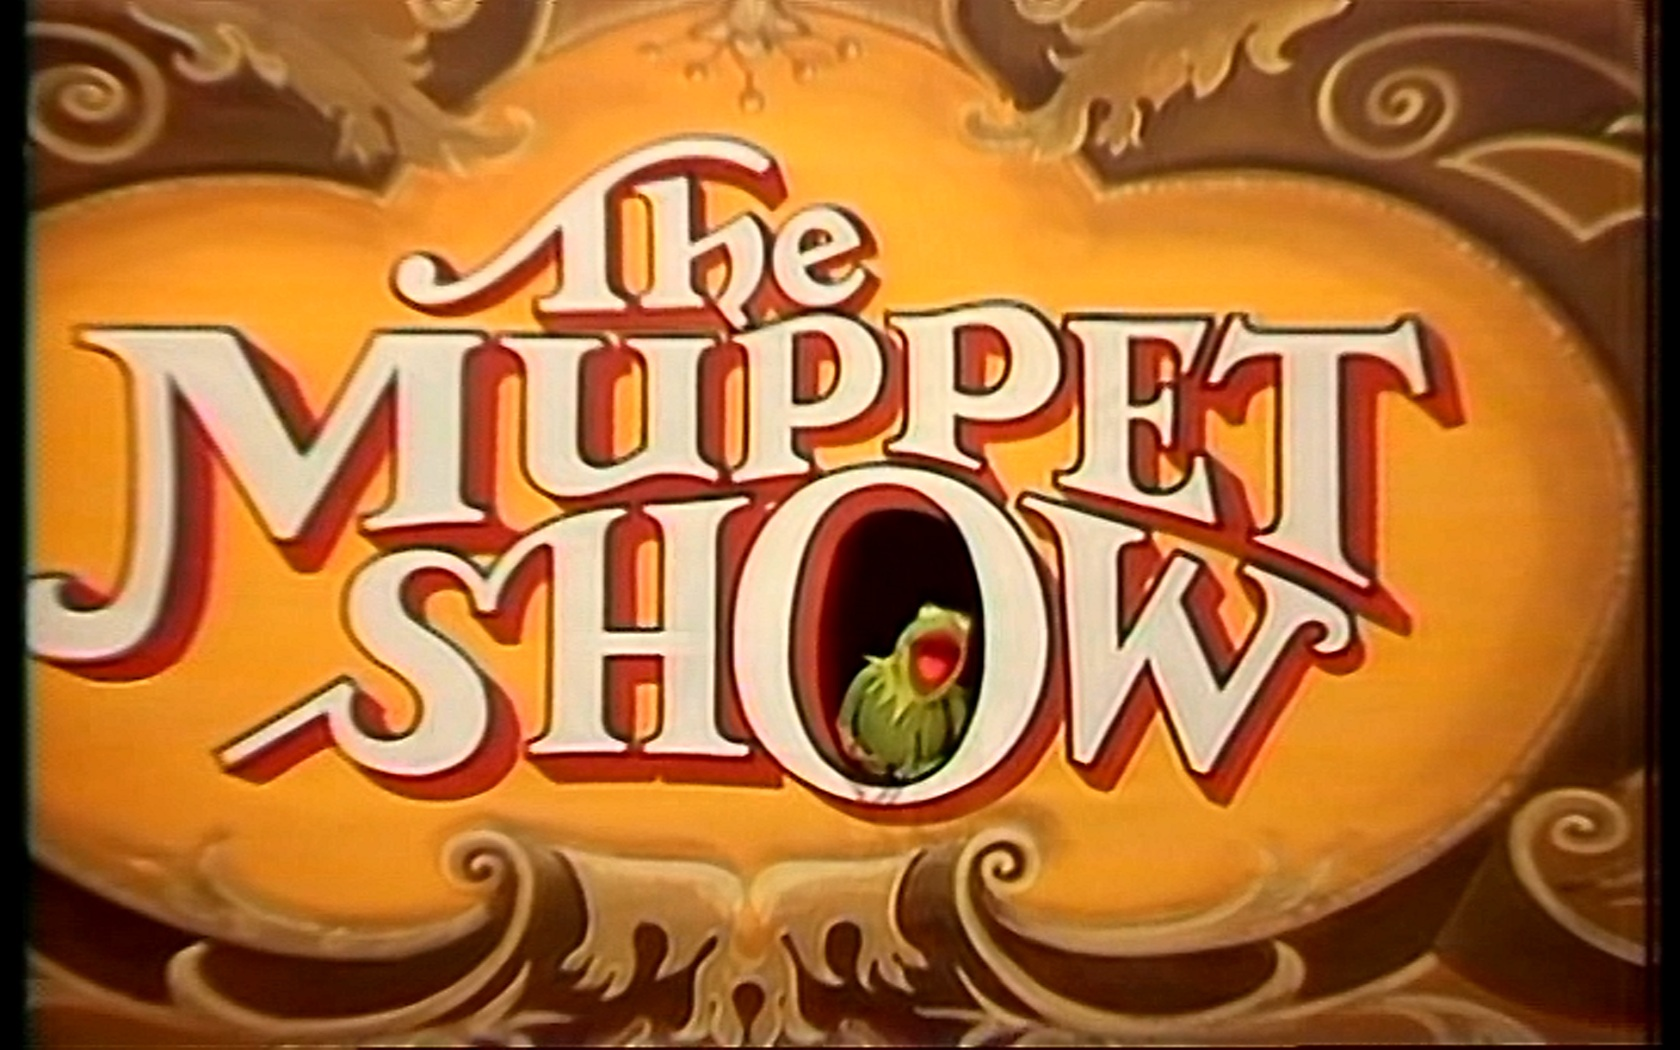 Muppets as Musical Influence